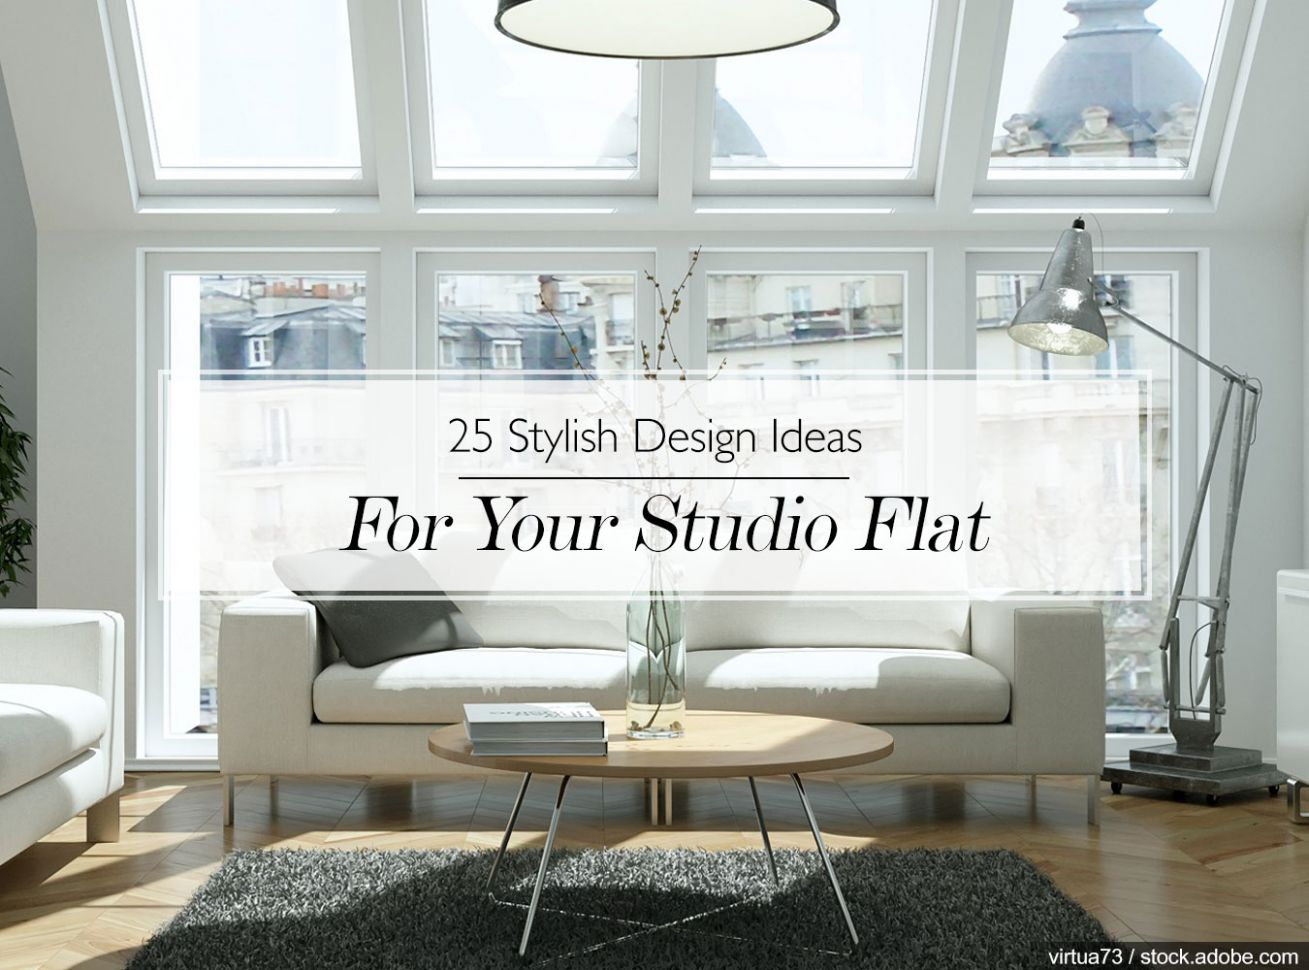 10 Stylish Design Ideas For Your Studio Flat   The LuxPad